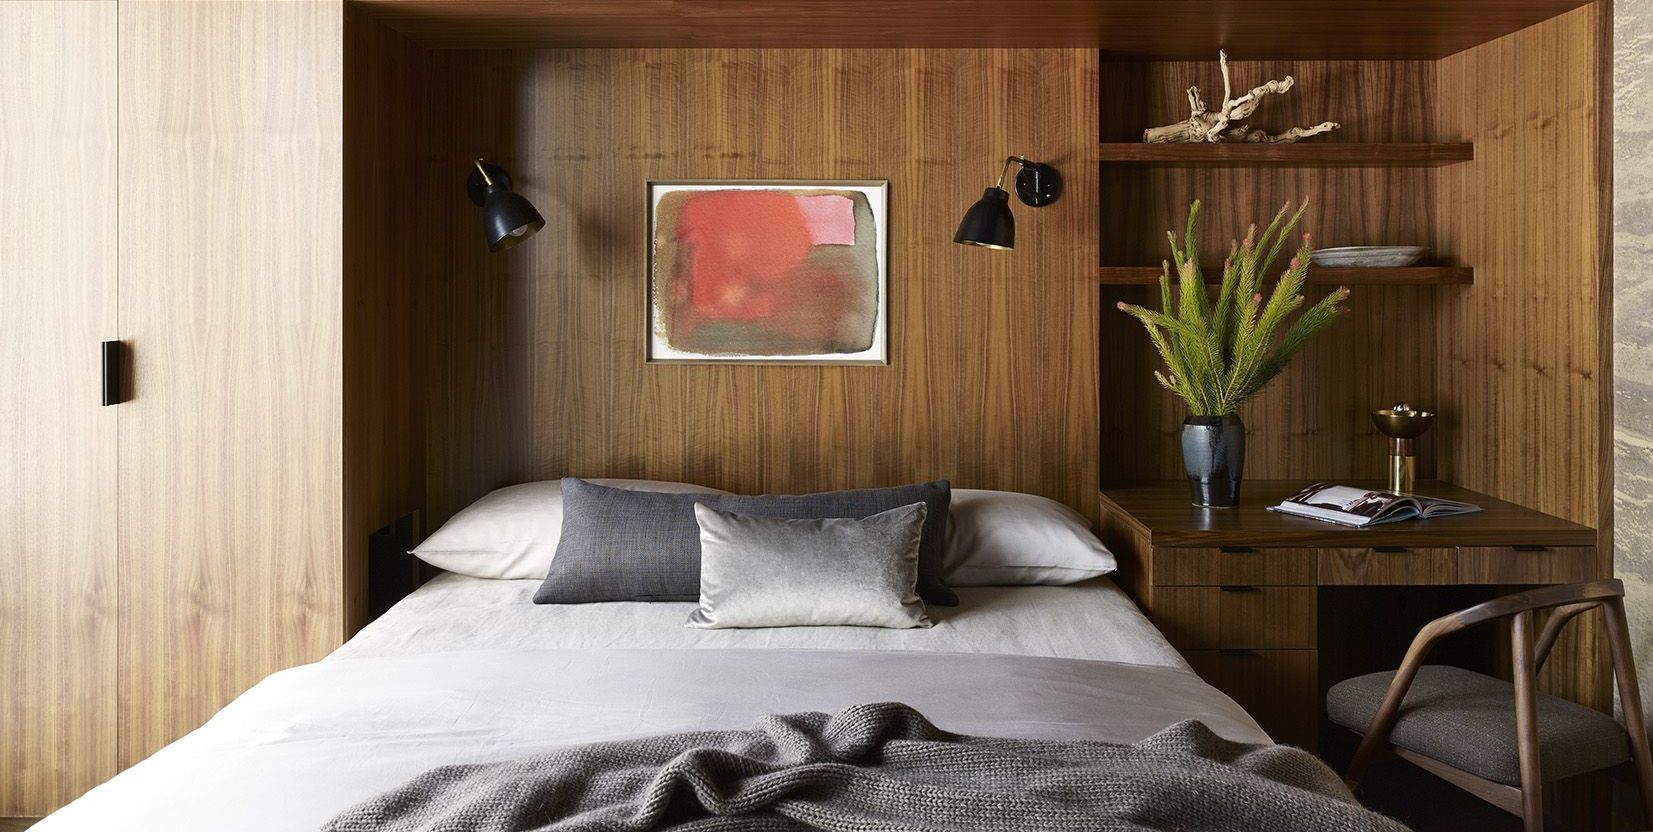 50+ Small Bedroom Decorating Ideas That Maximize Coziness